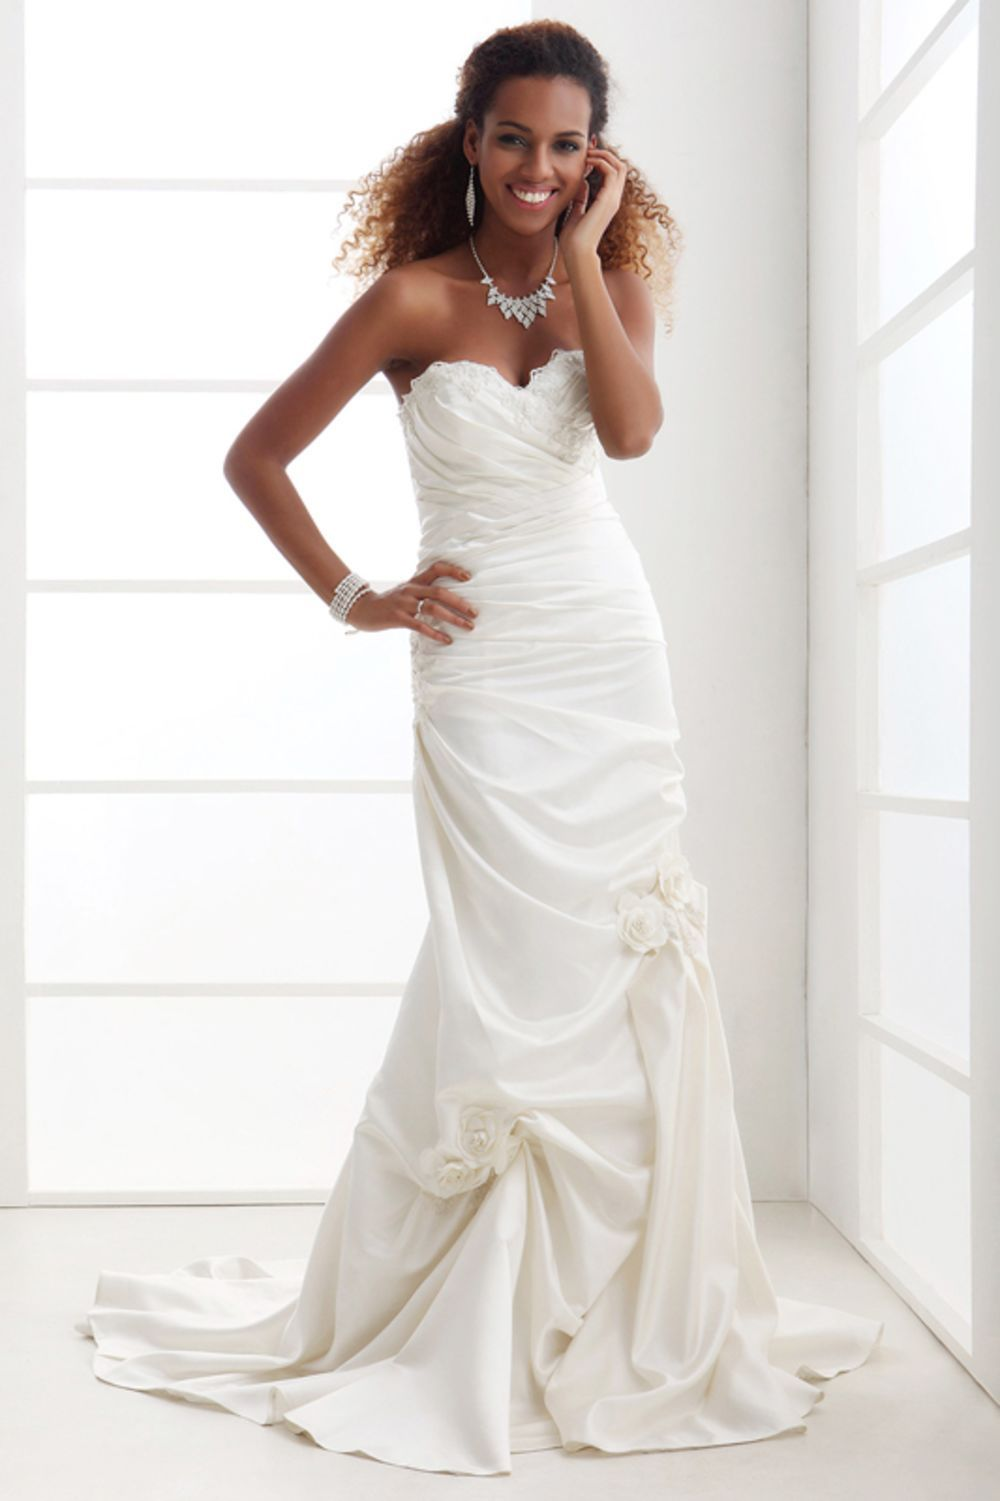 70 Light In The Box Wedding Dresses Women S For Weddings Check More At